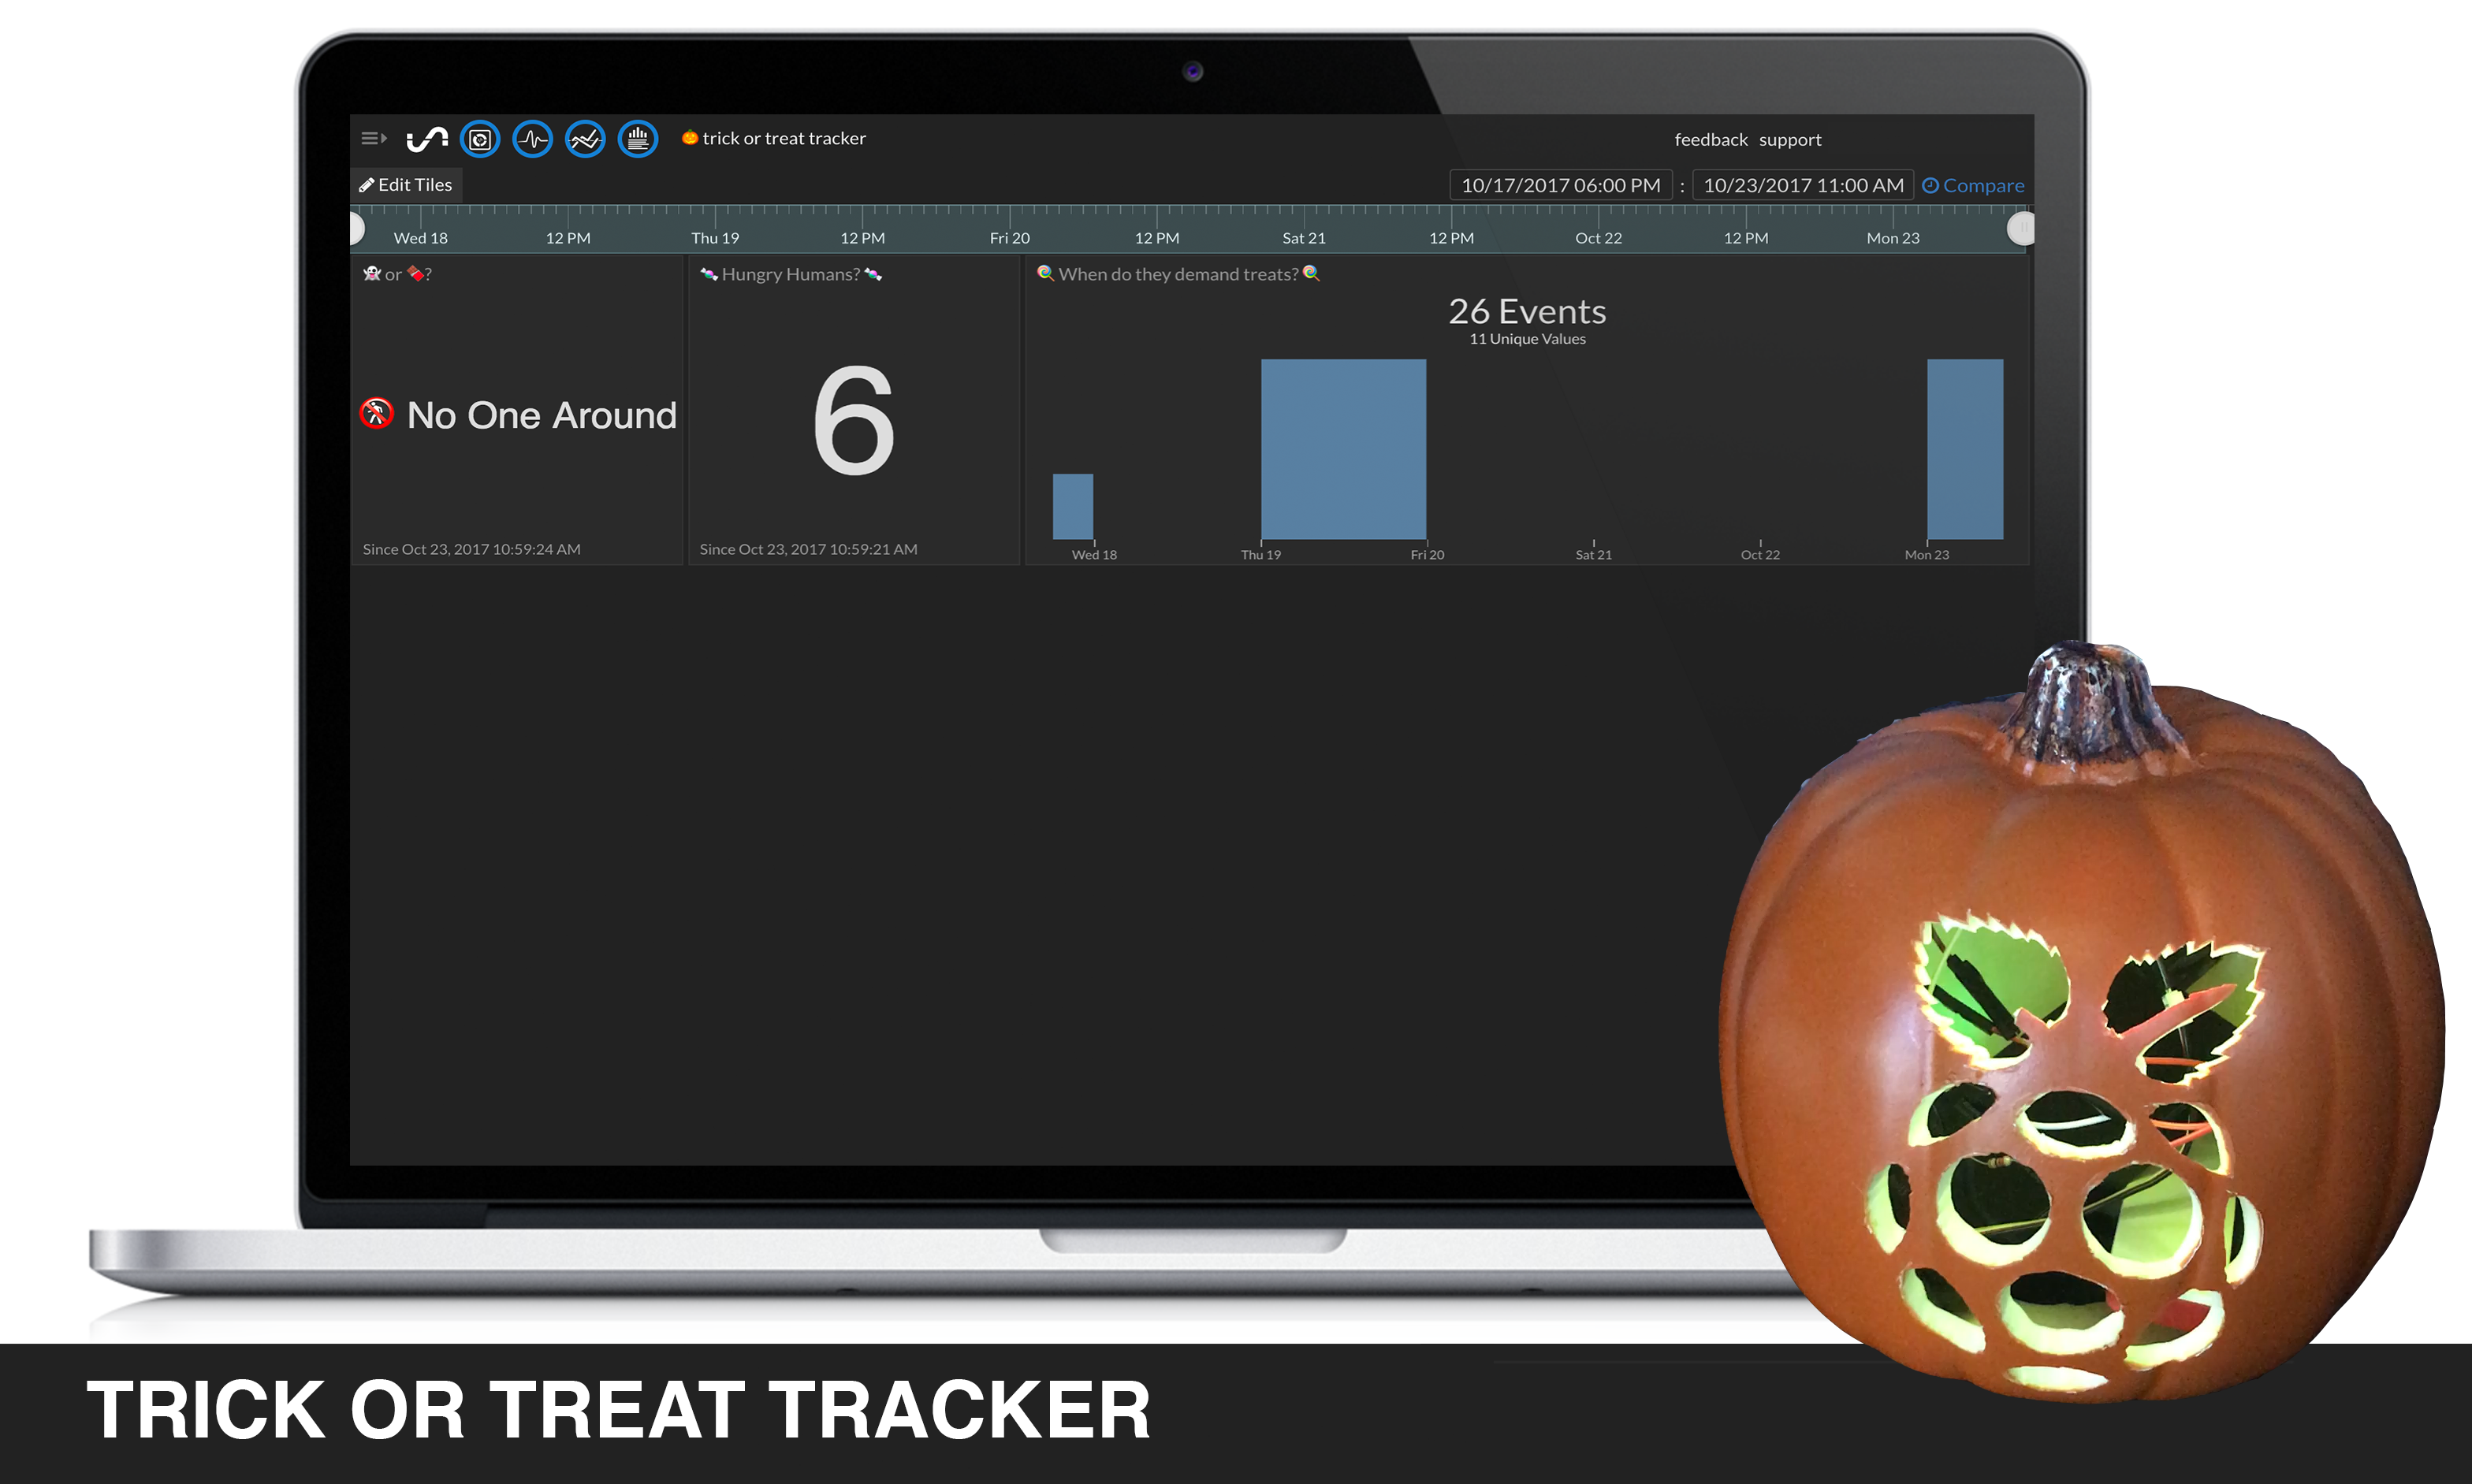 trick or treat tracker main